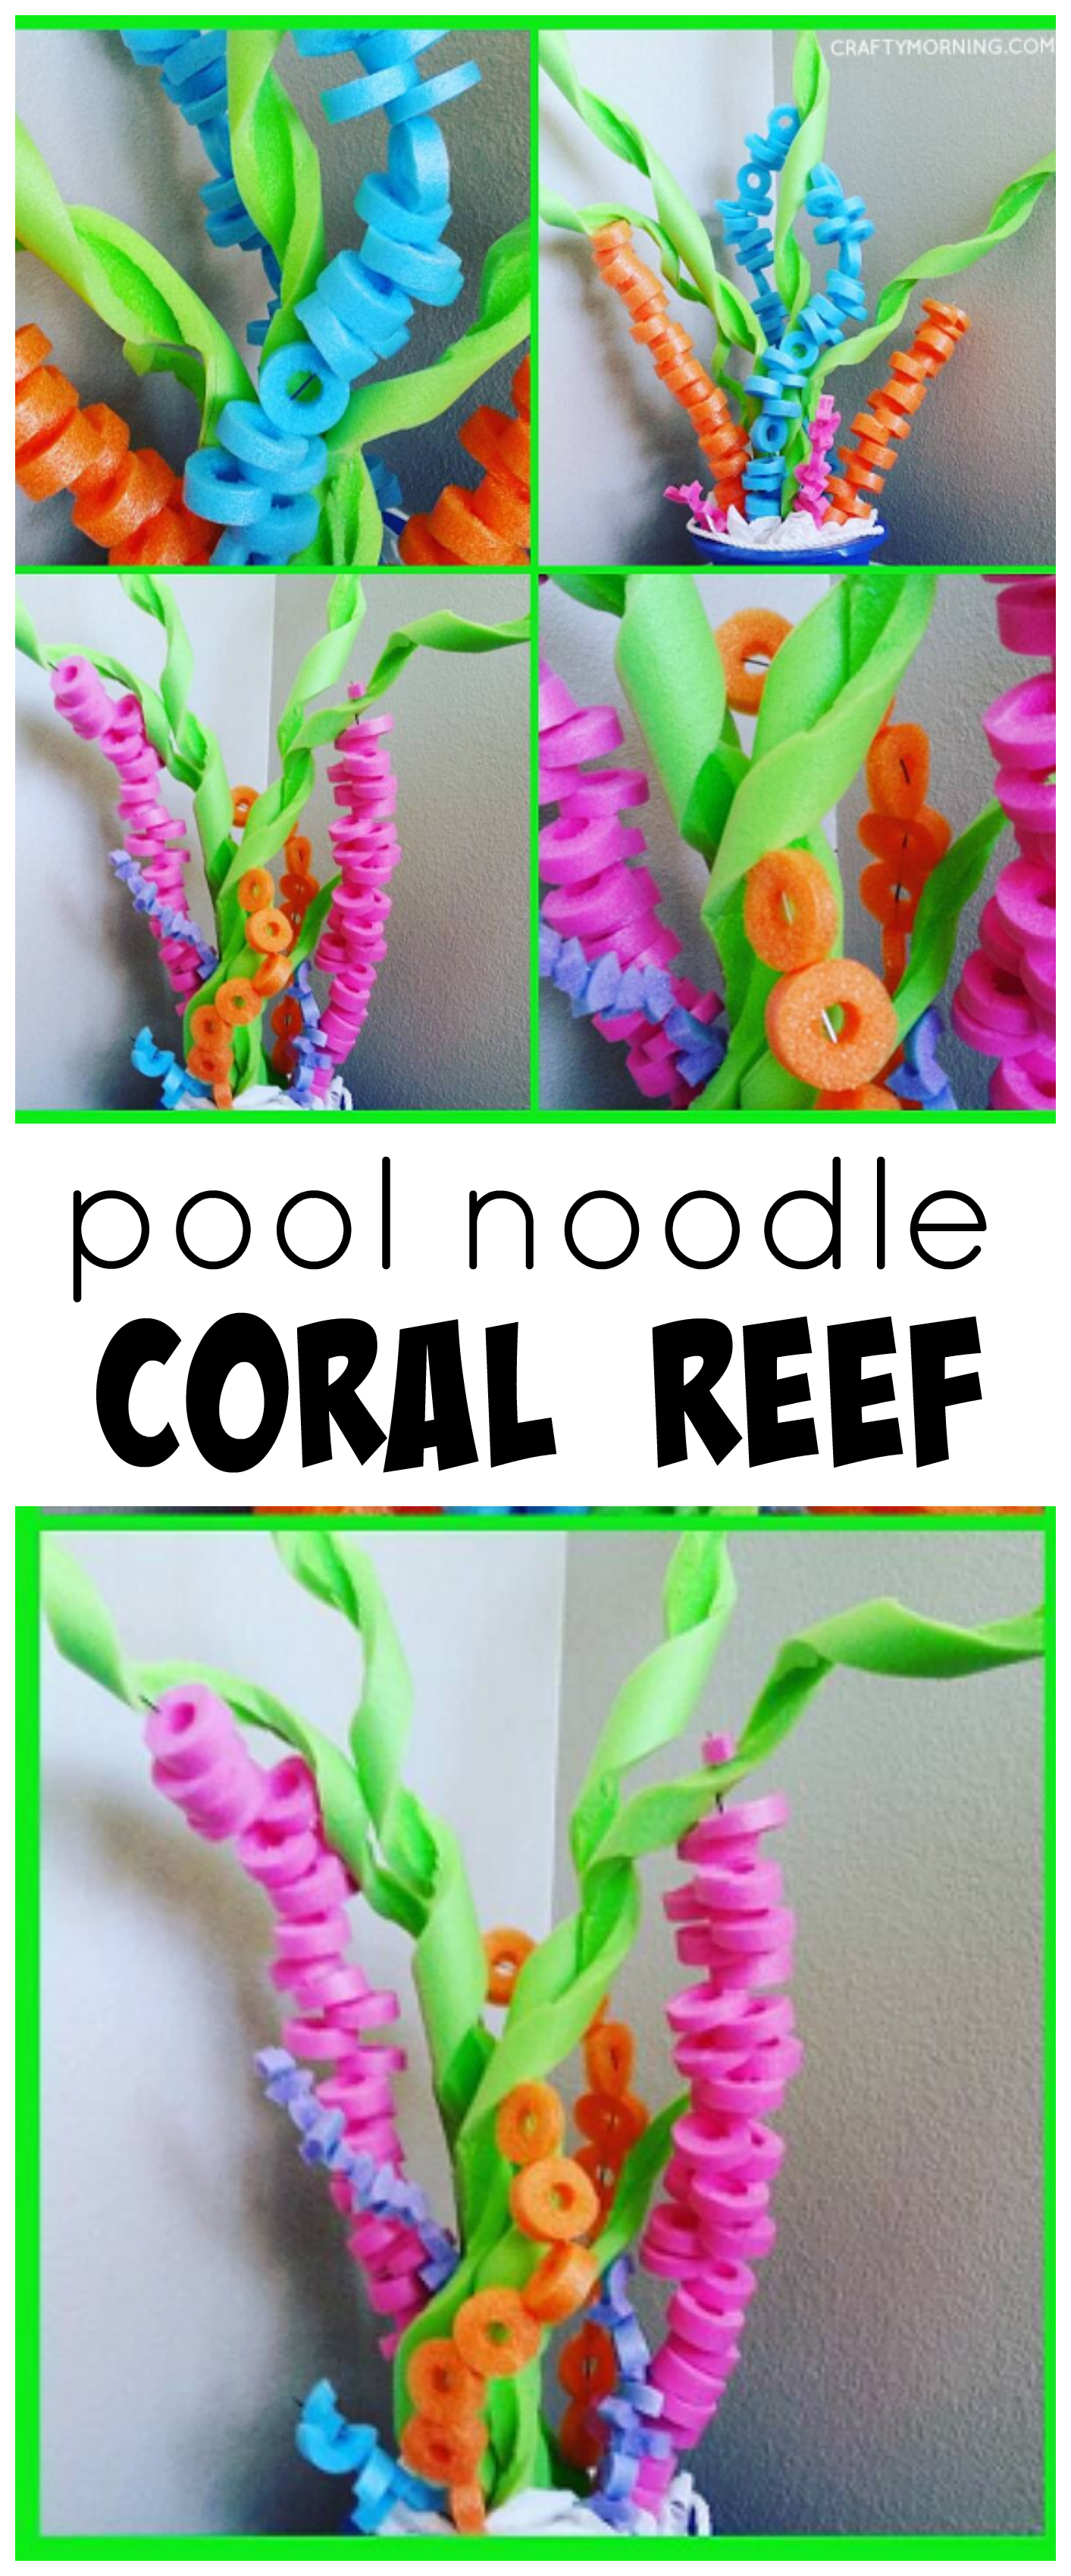 Pool Noodle Coral Reef Craft For An Under The Sea Party With Kids